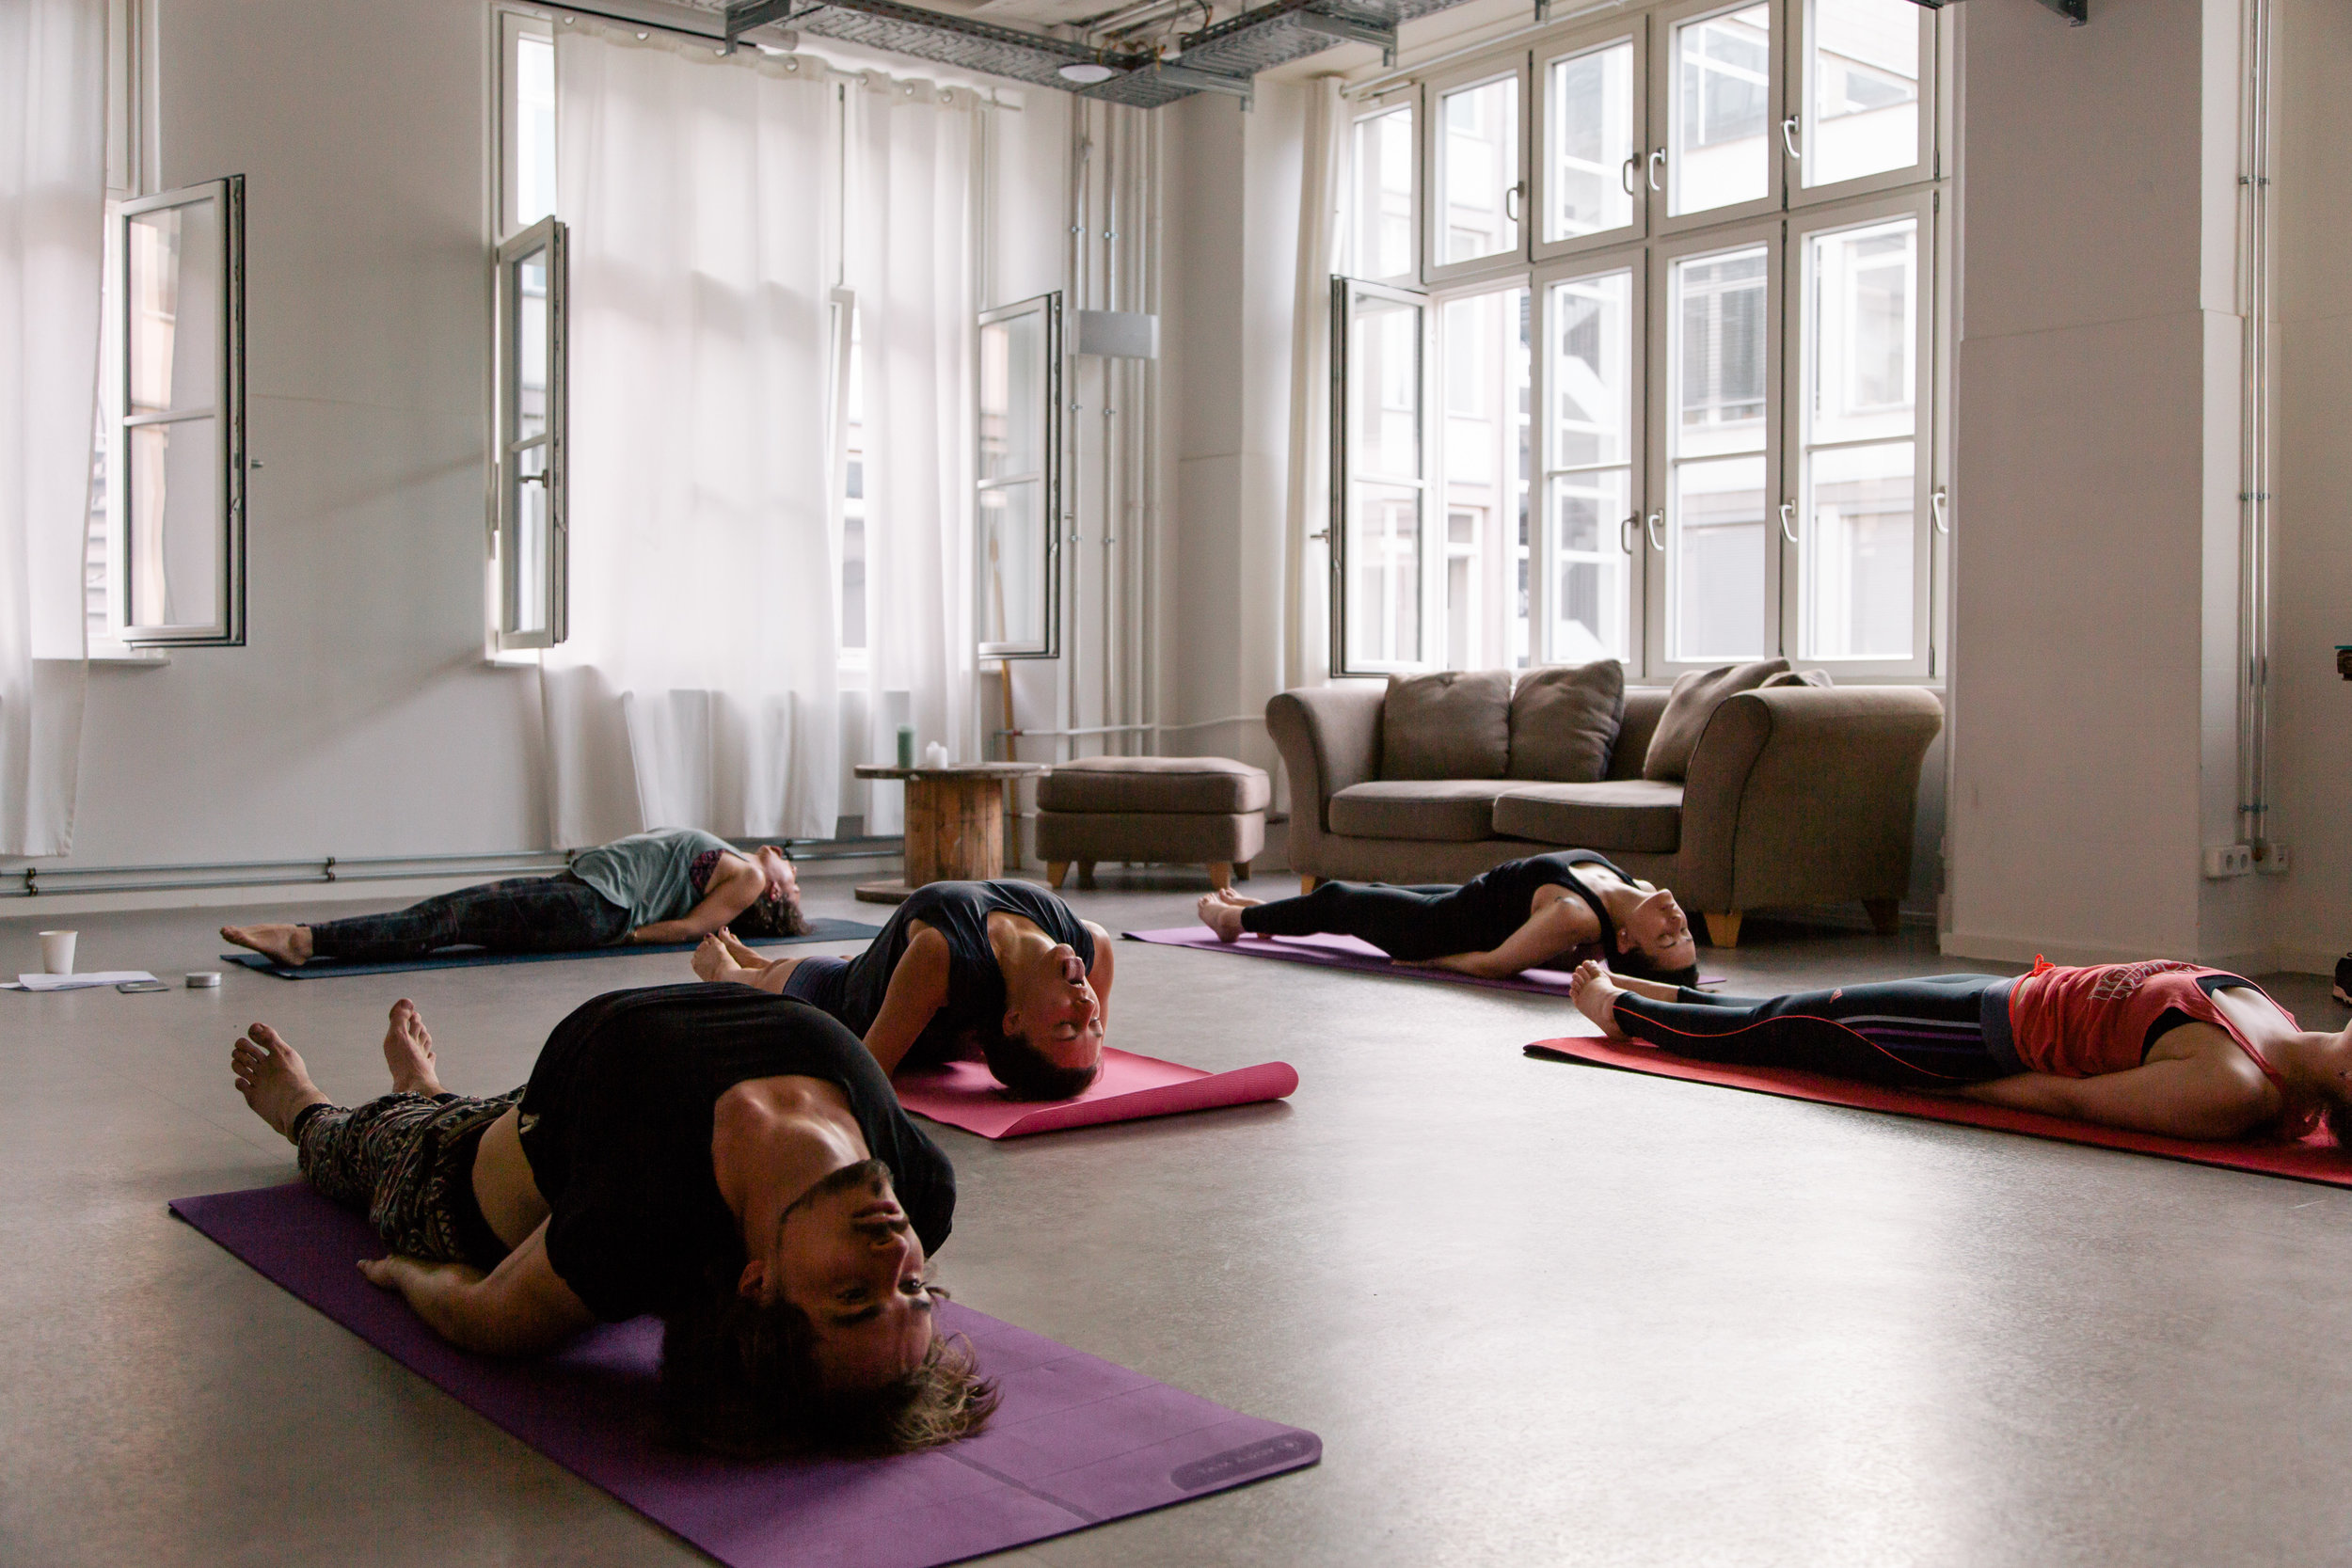 Yoga_for_Happiness07-christina-metzler-berlin.jpg